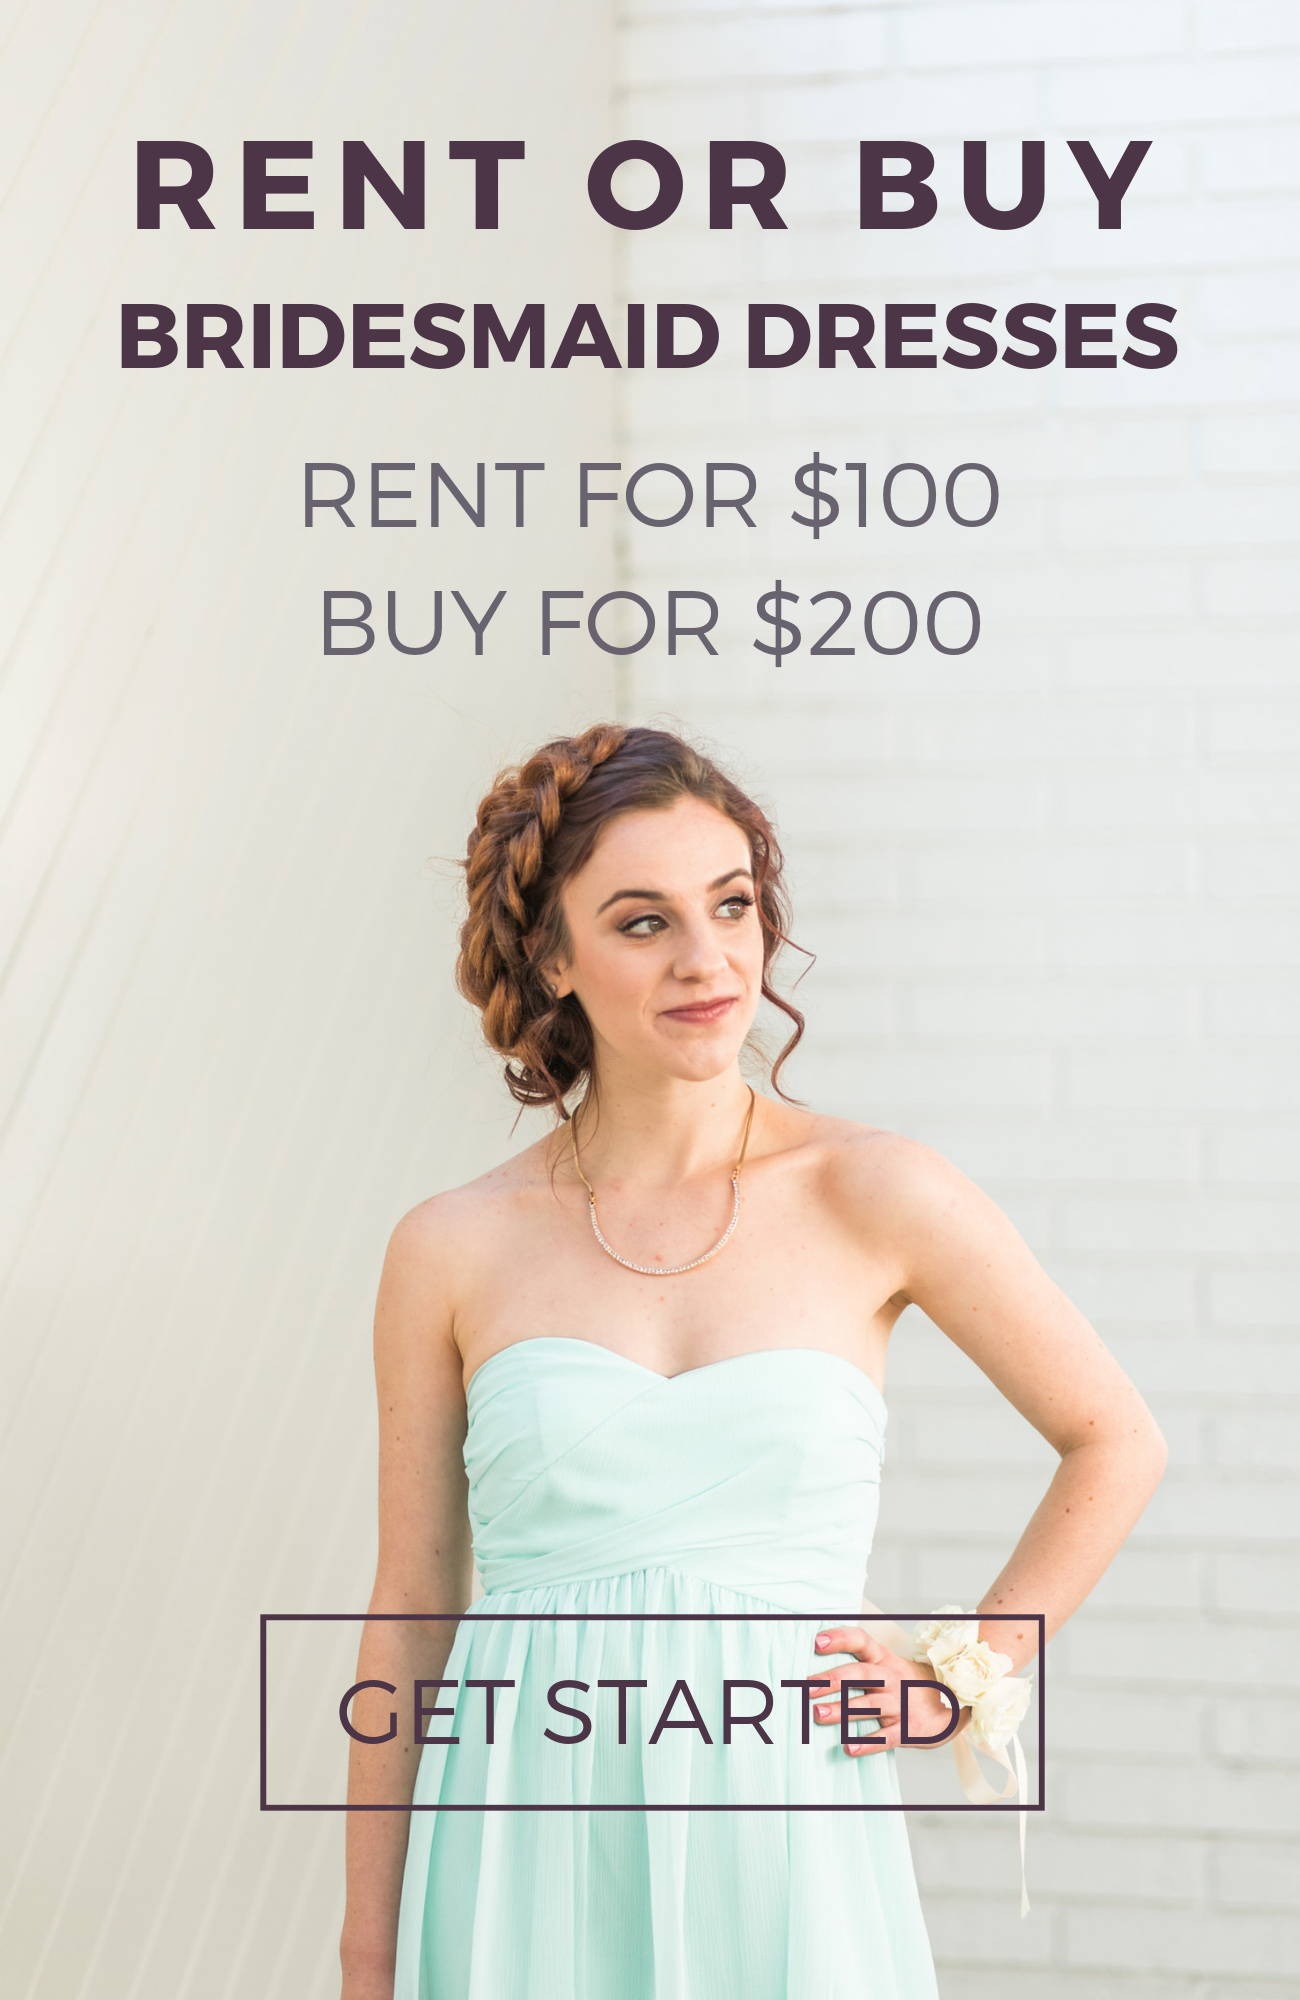 Cocktail Dresses for Rent